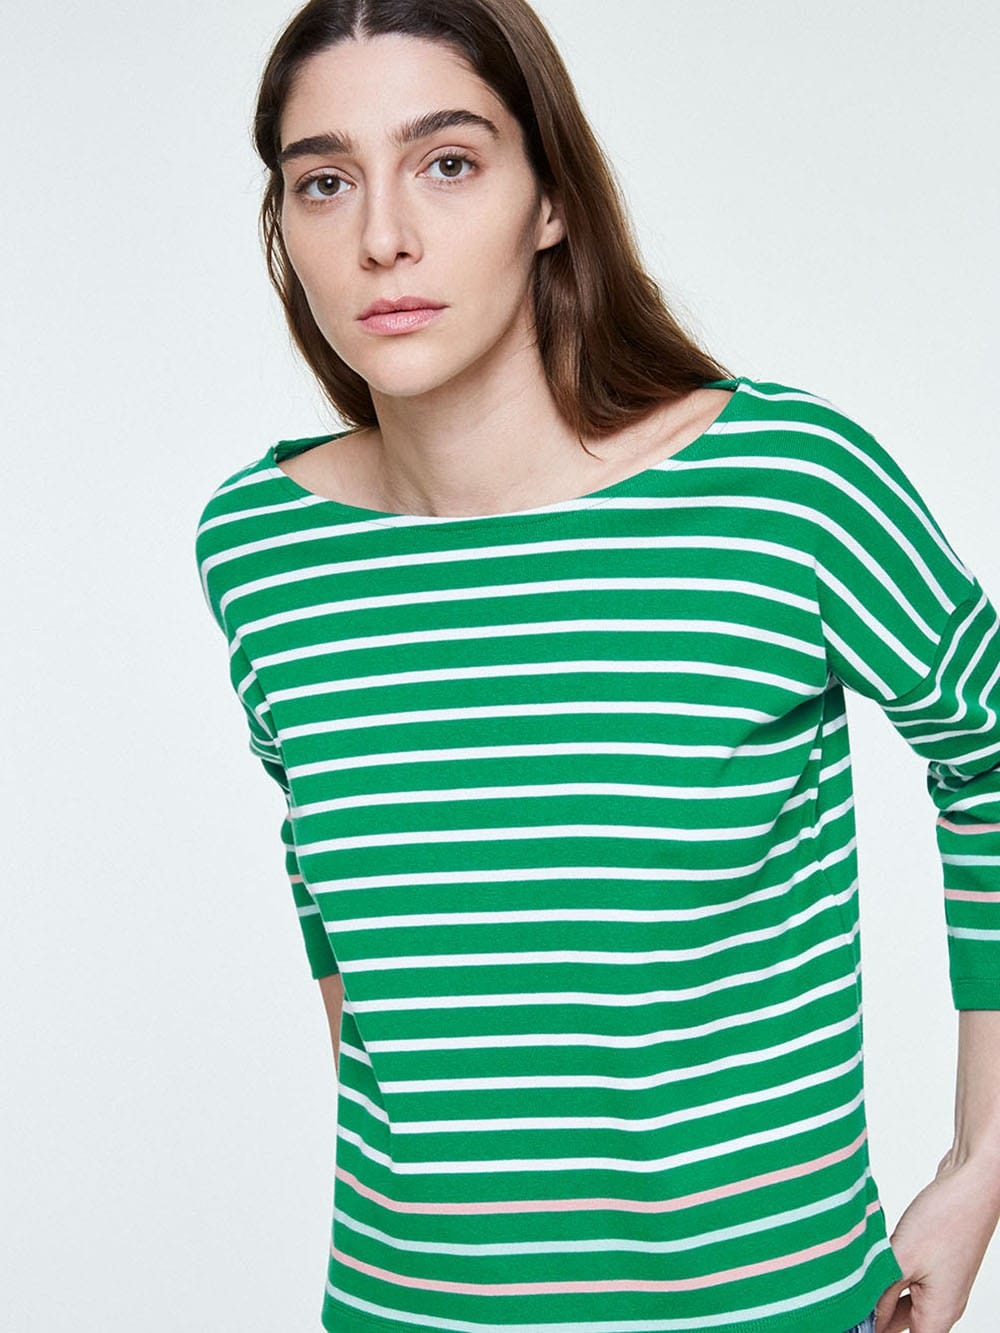 White and pink striped sweater made of organic cotton-Filinaa